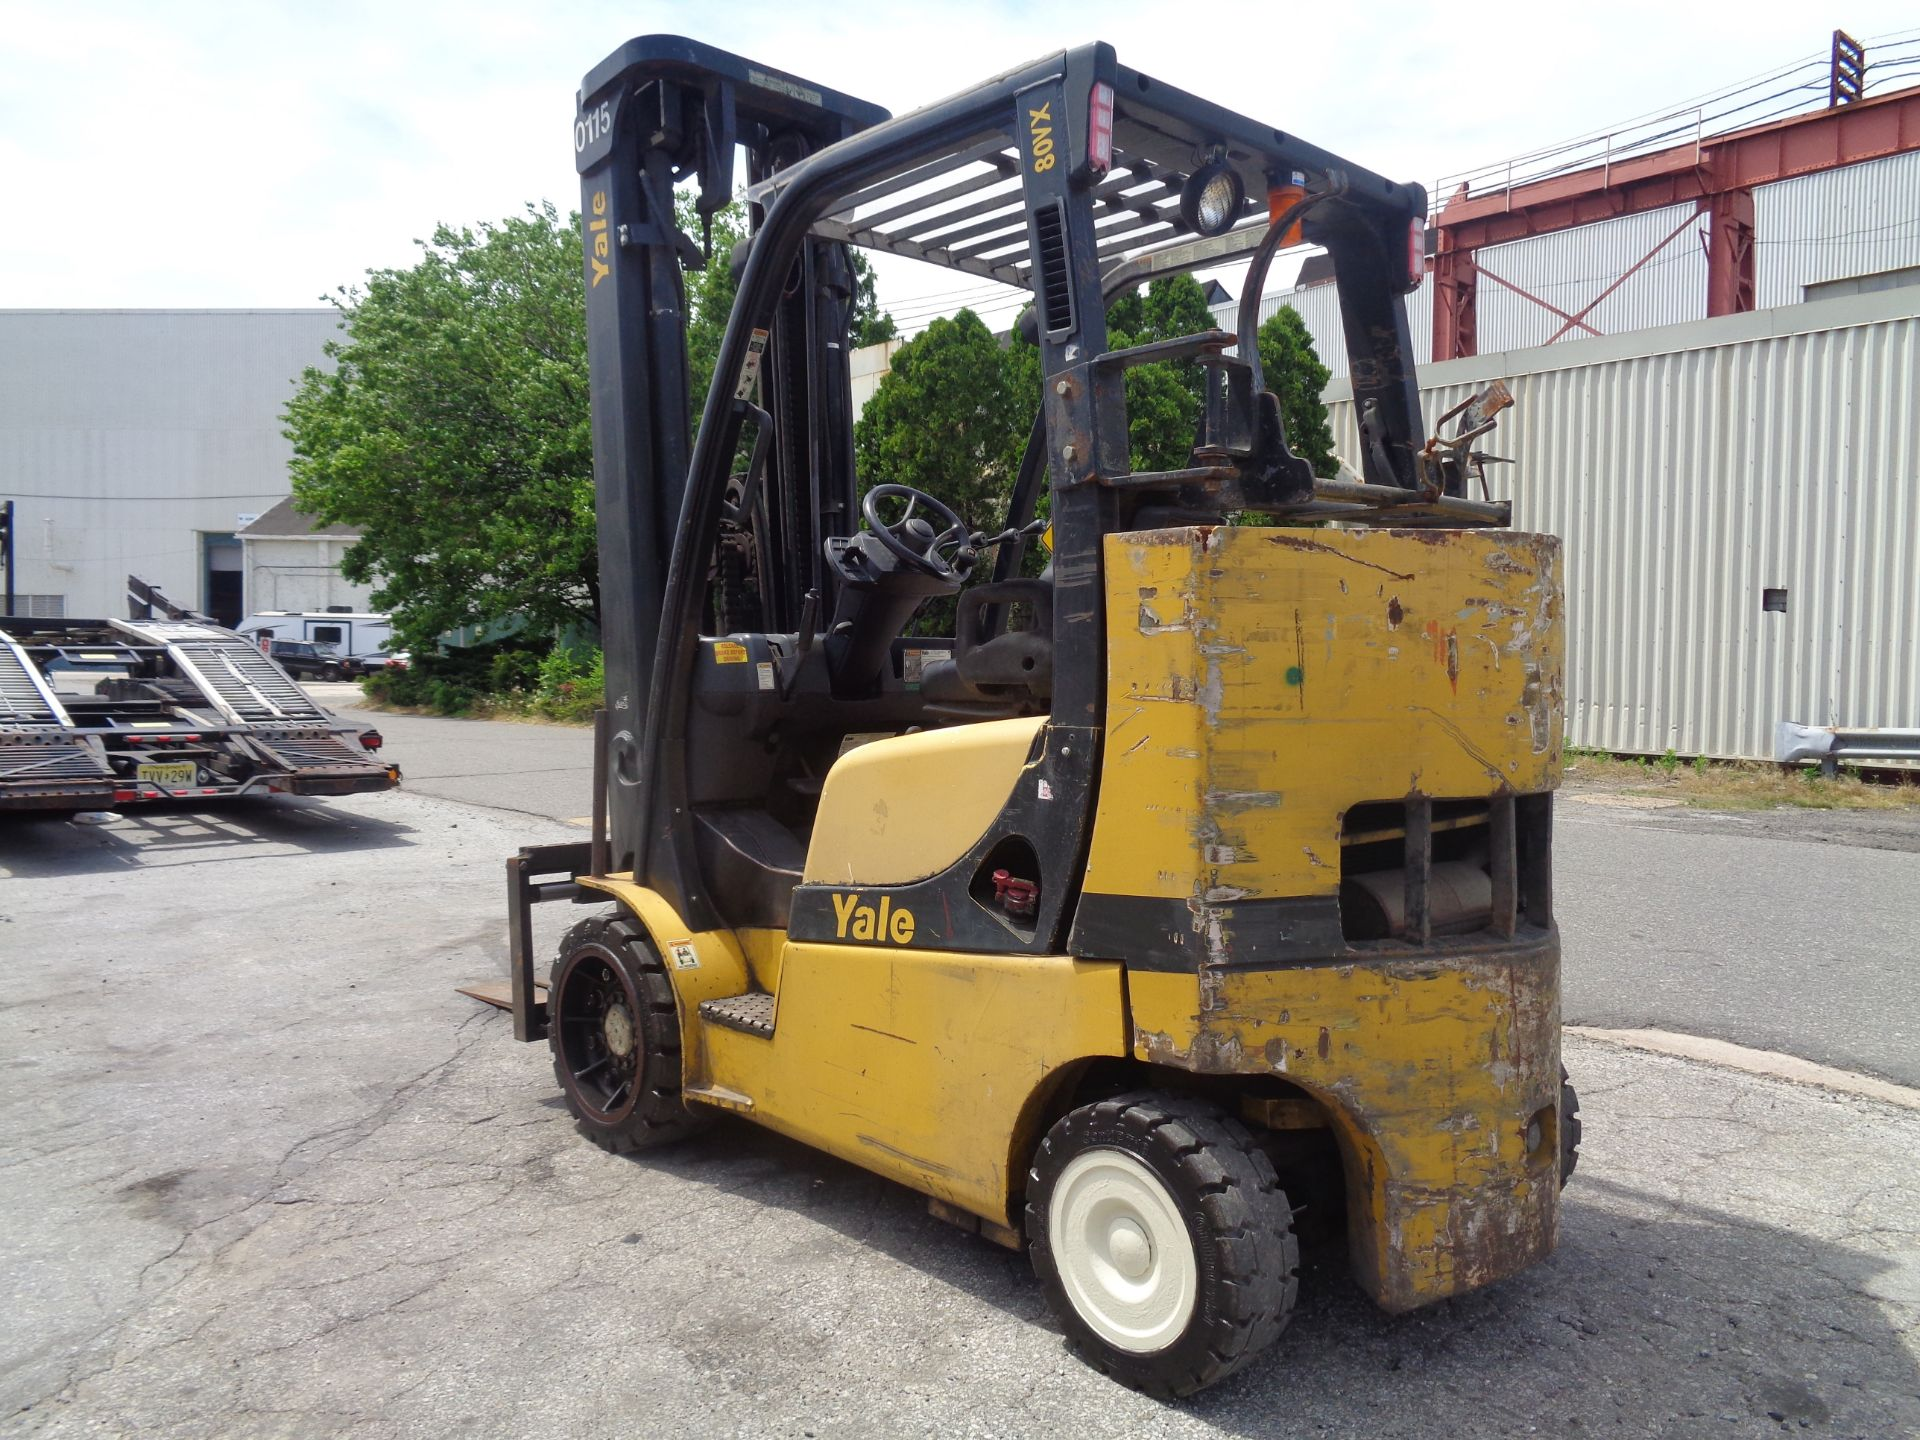 Yale GC080VXNGSE107.6 8,000lb Forklift - Image 11 of 18